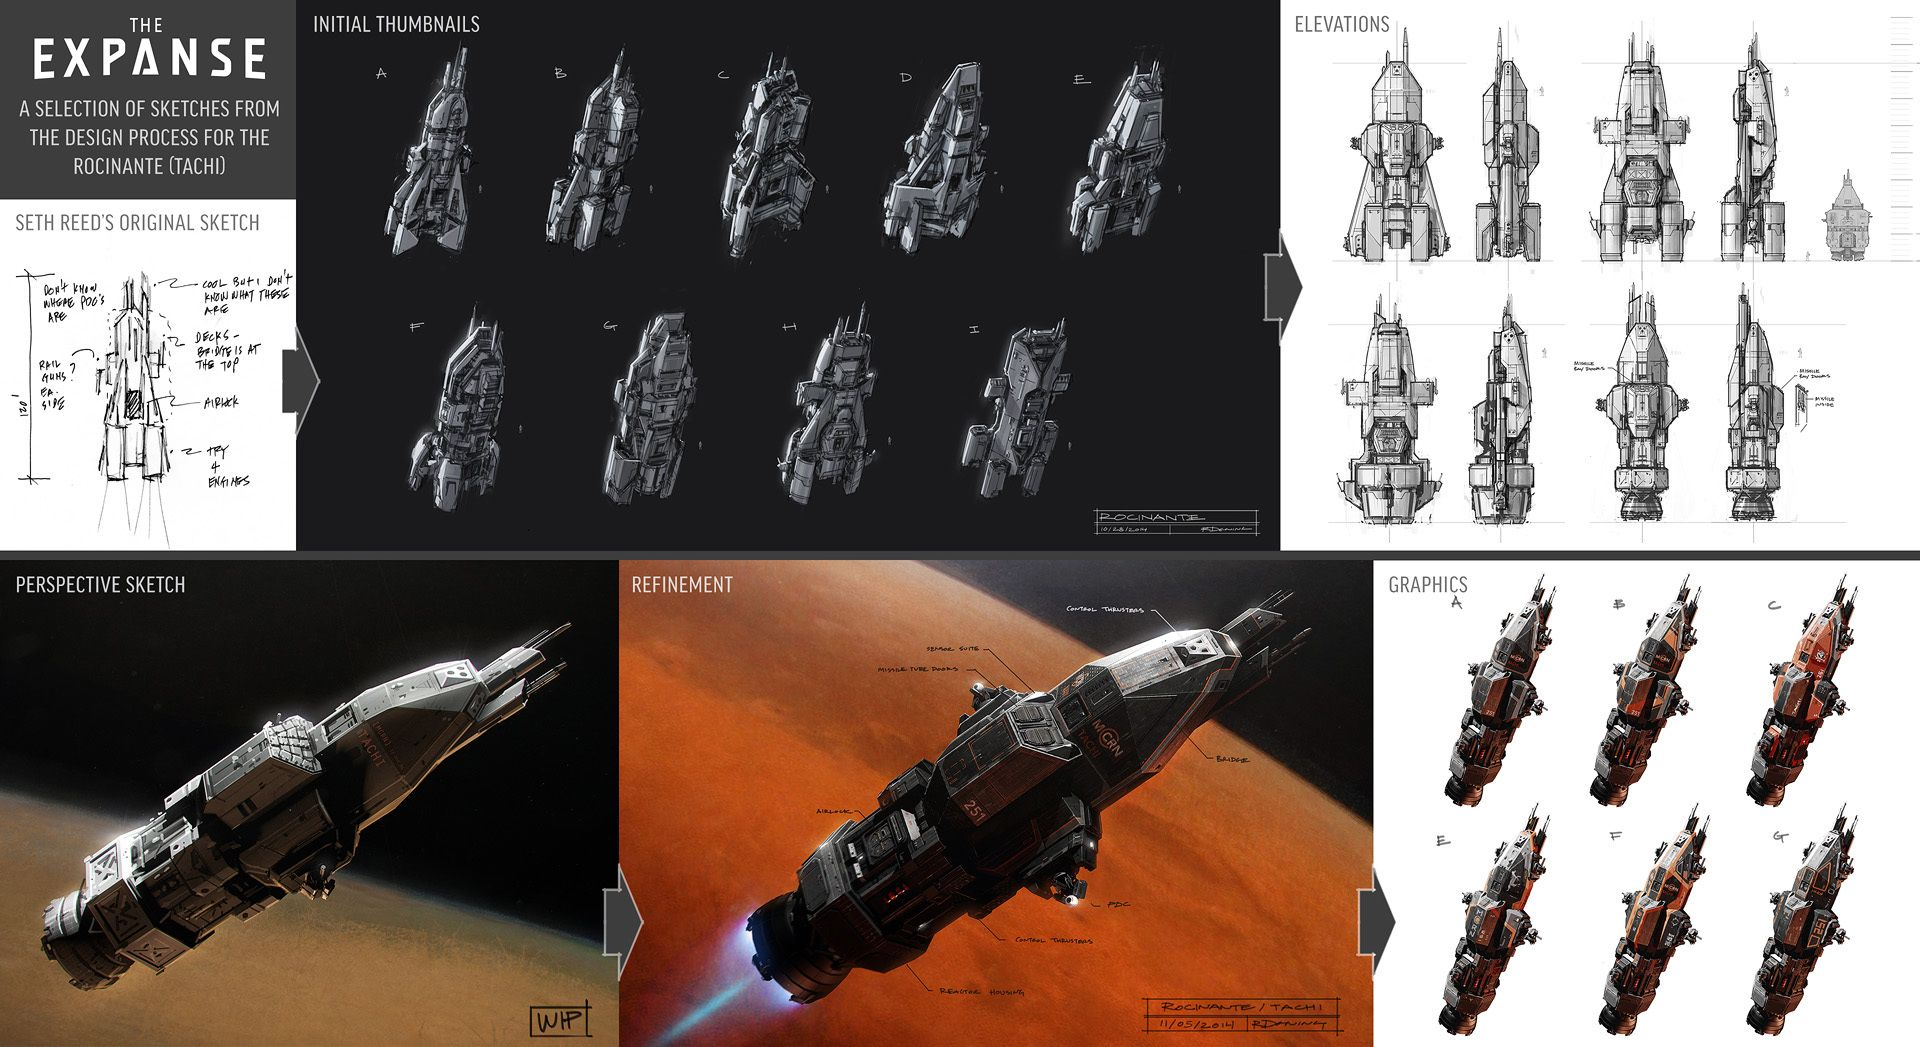 Behind The Scenes The Concept Art Of The Expanse